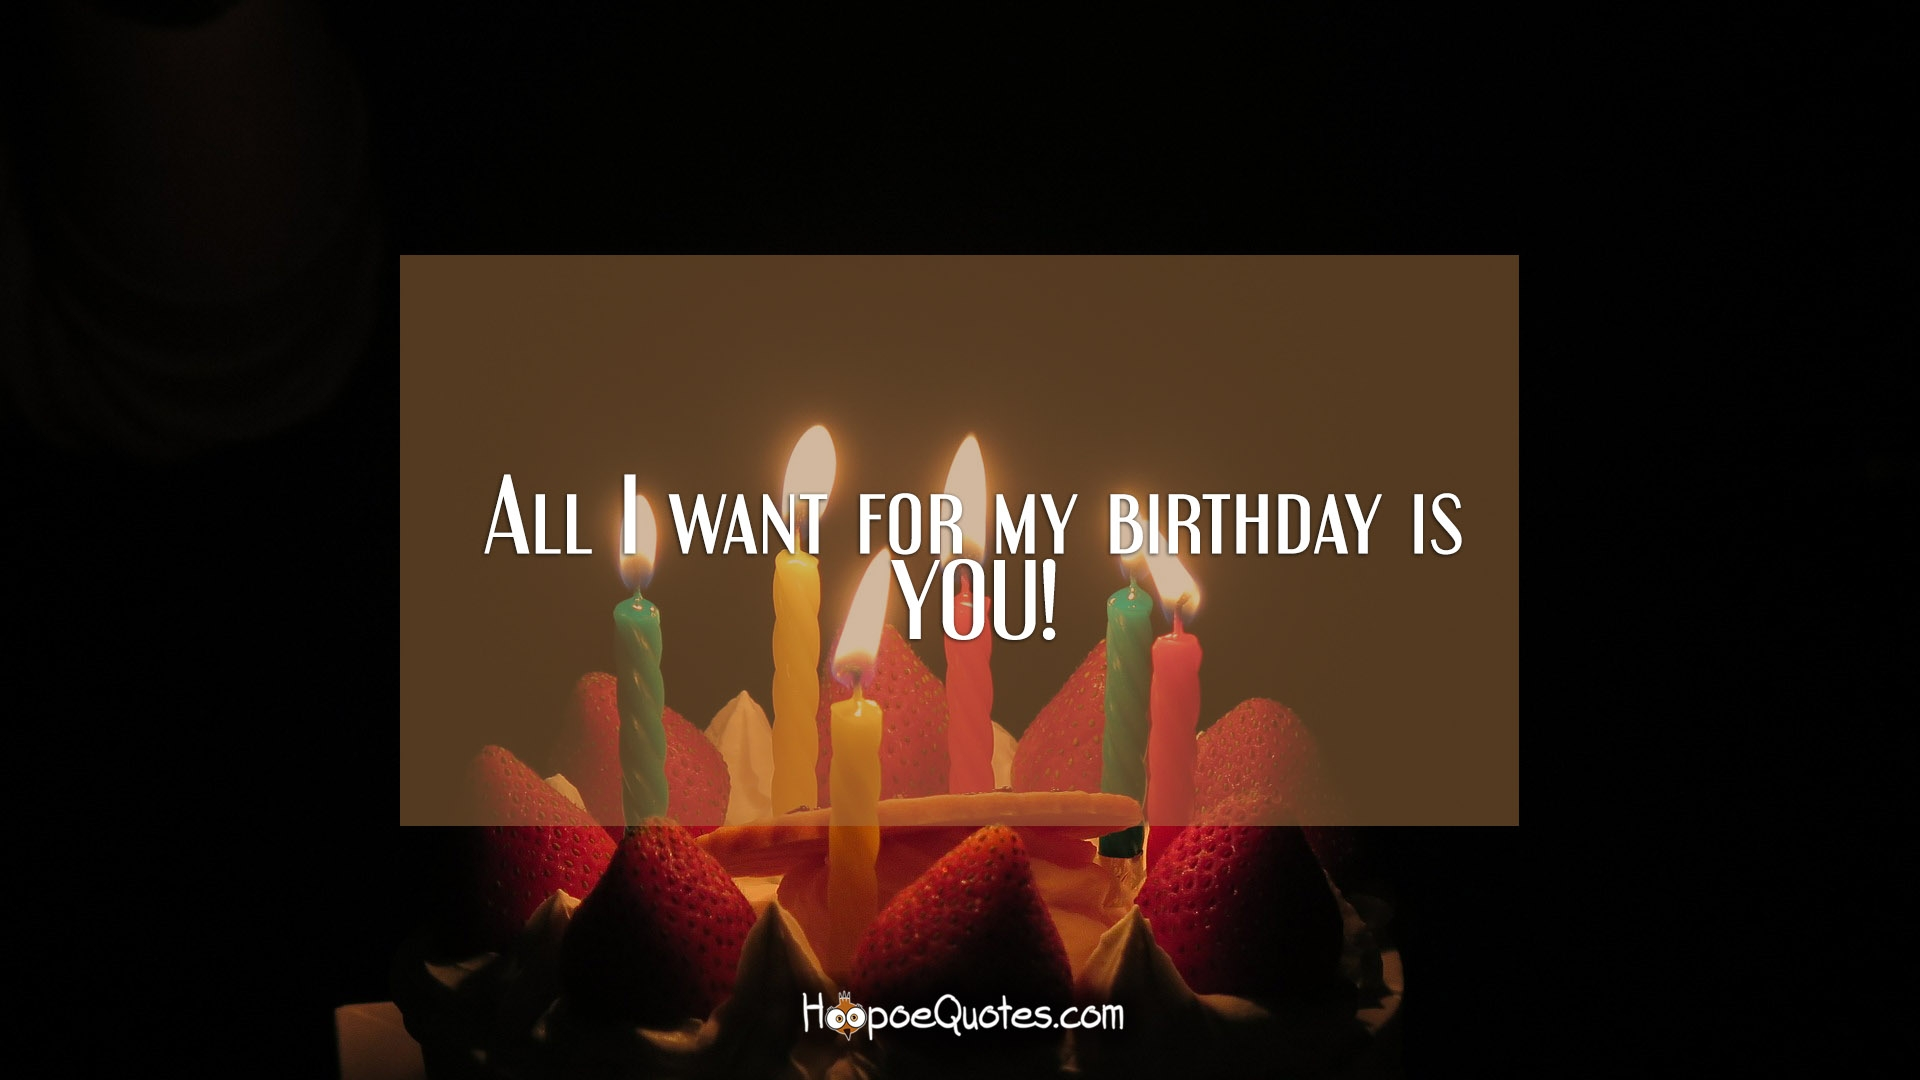 Cool All I Want For My Birthday Is You Hoopoequotes Personalised Birthday Cards Paralily Jamesorg